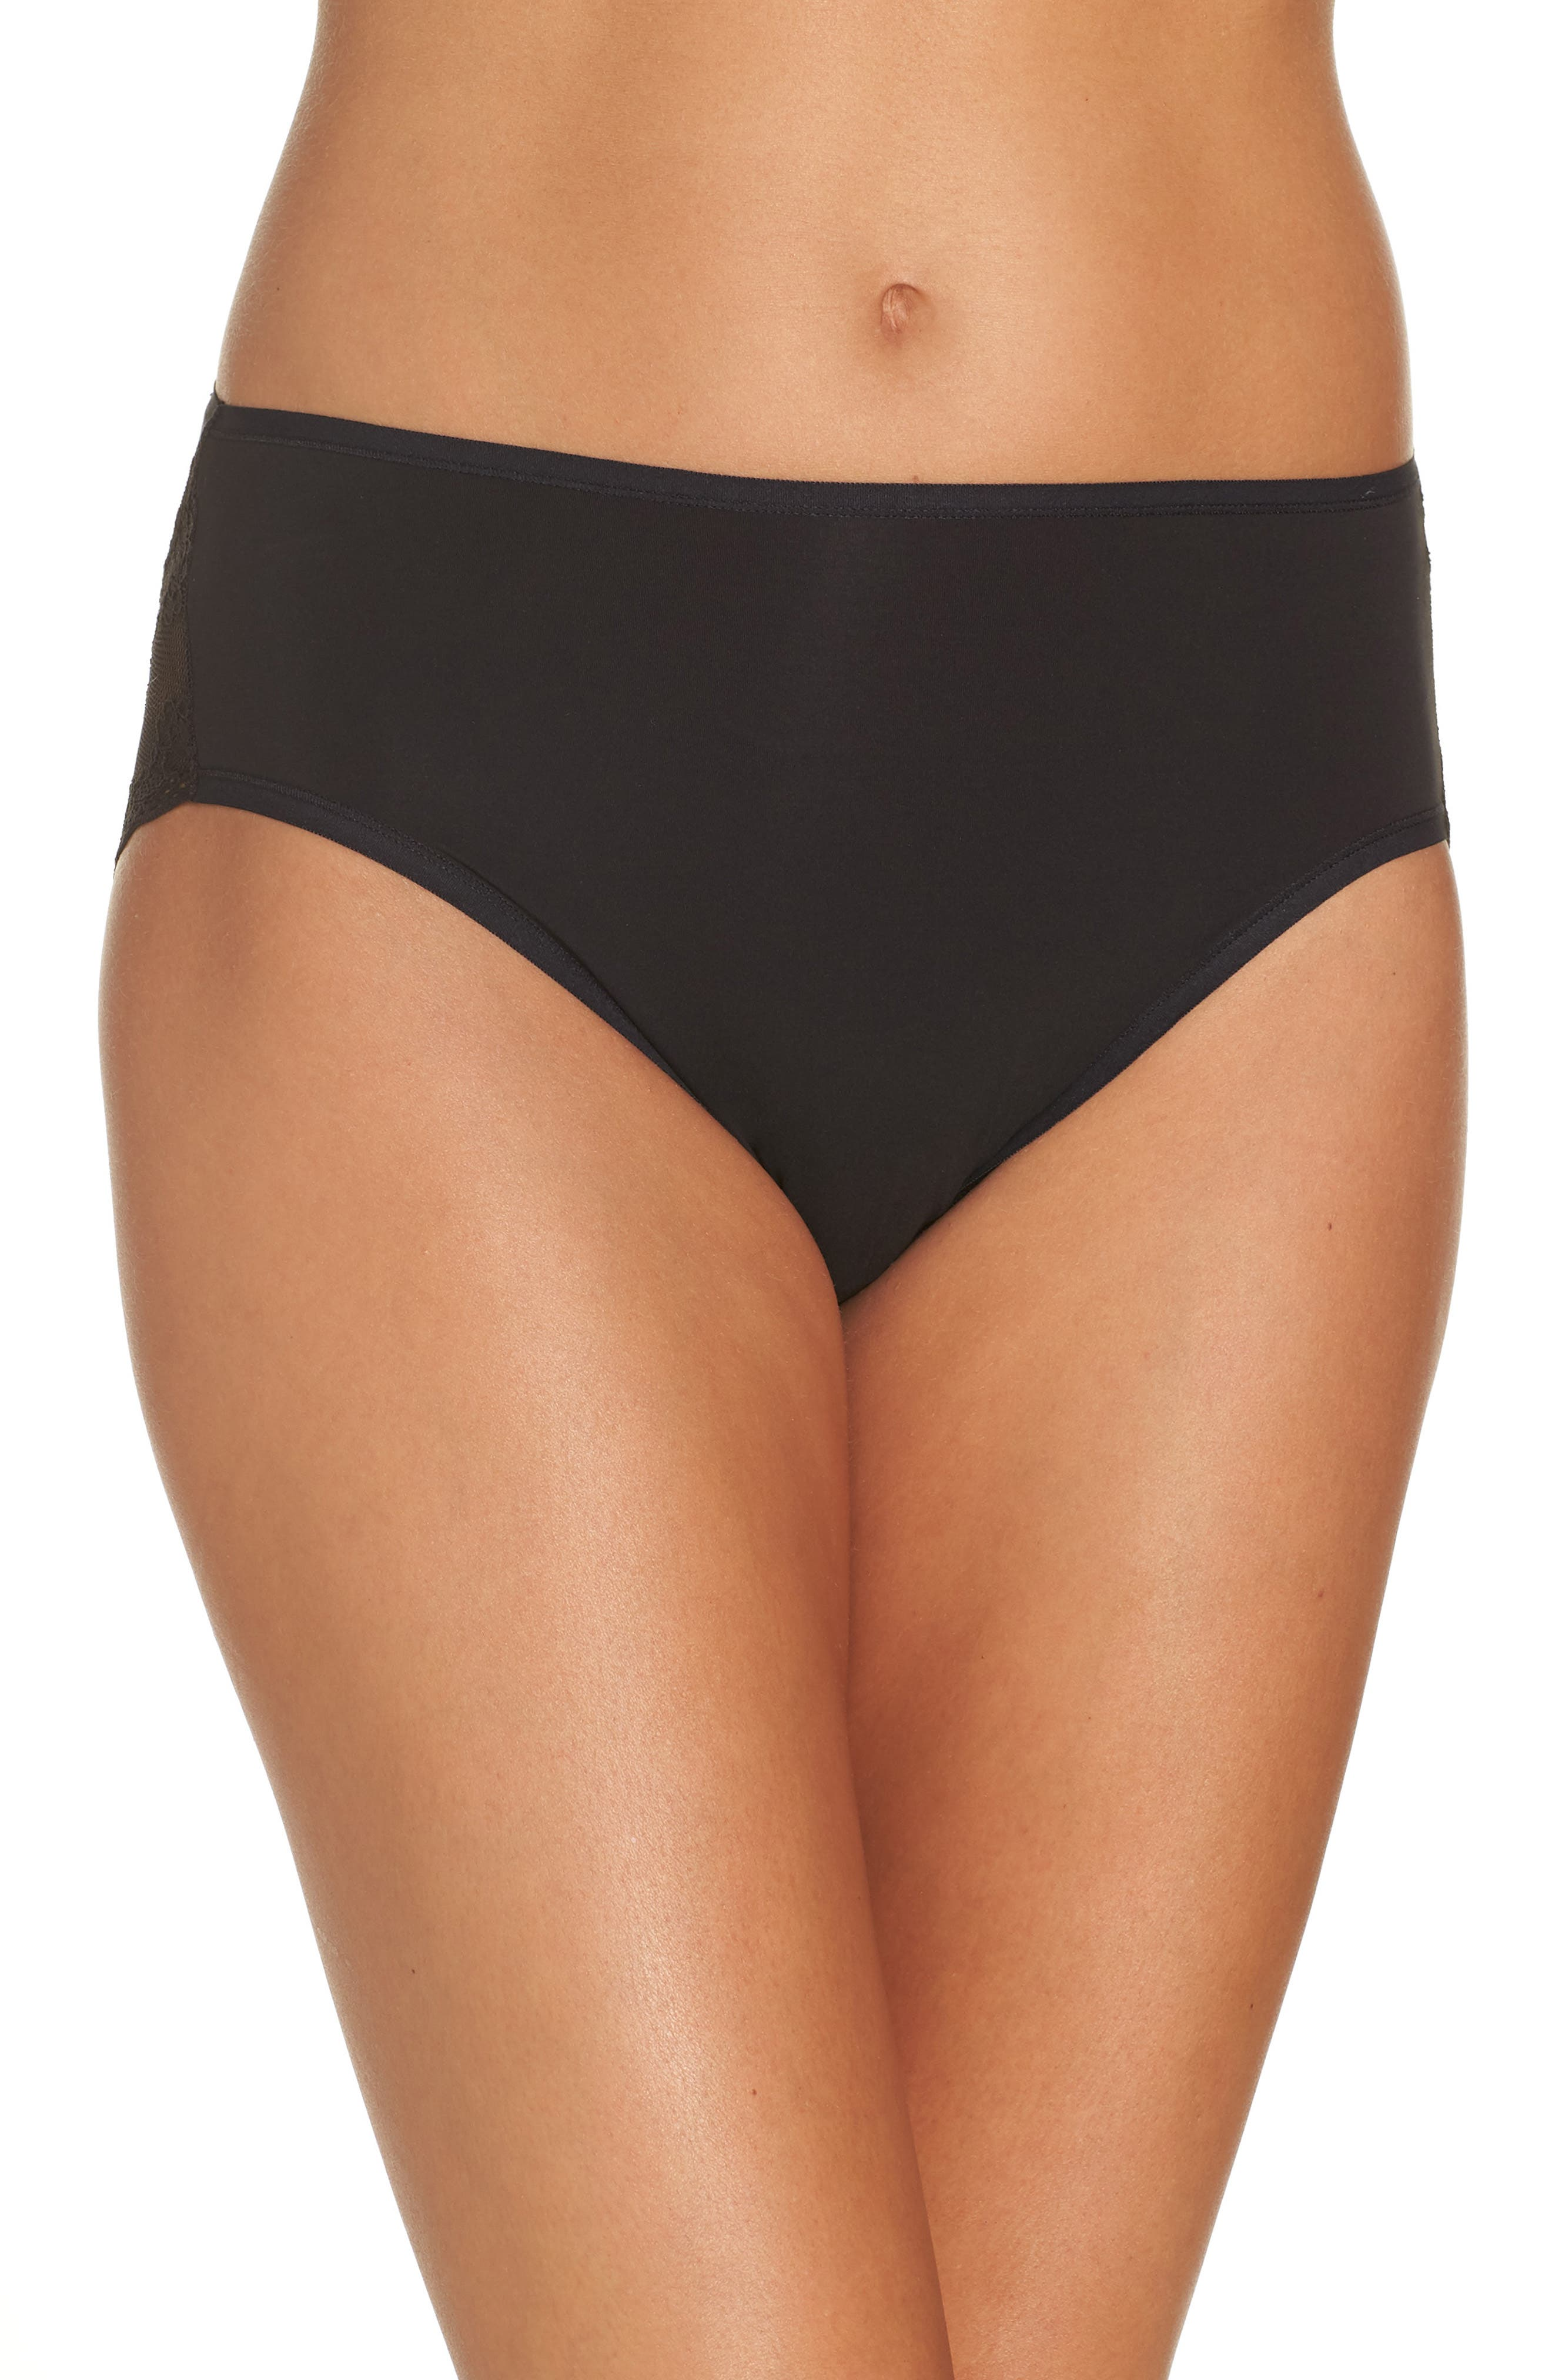 Bliss Perfection French Cut Briefs,                         Main,                         color, BLACK